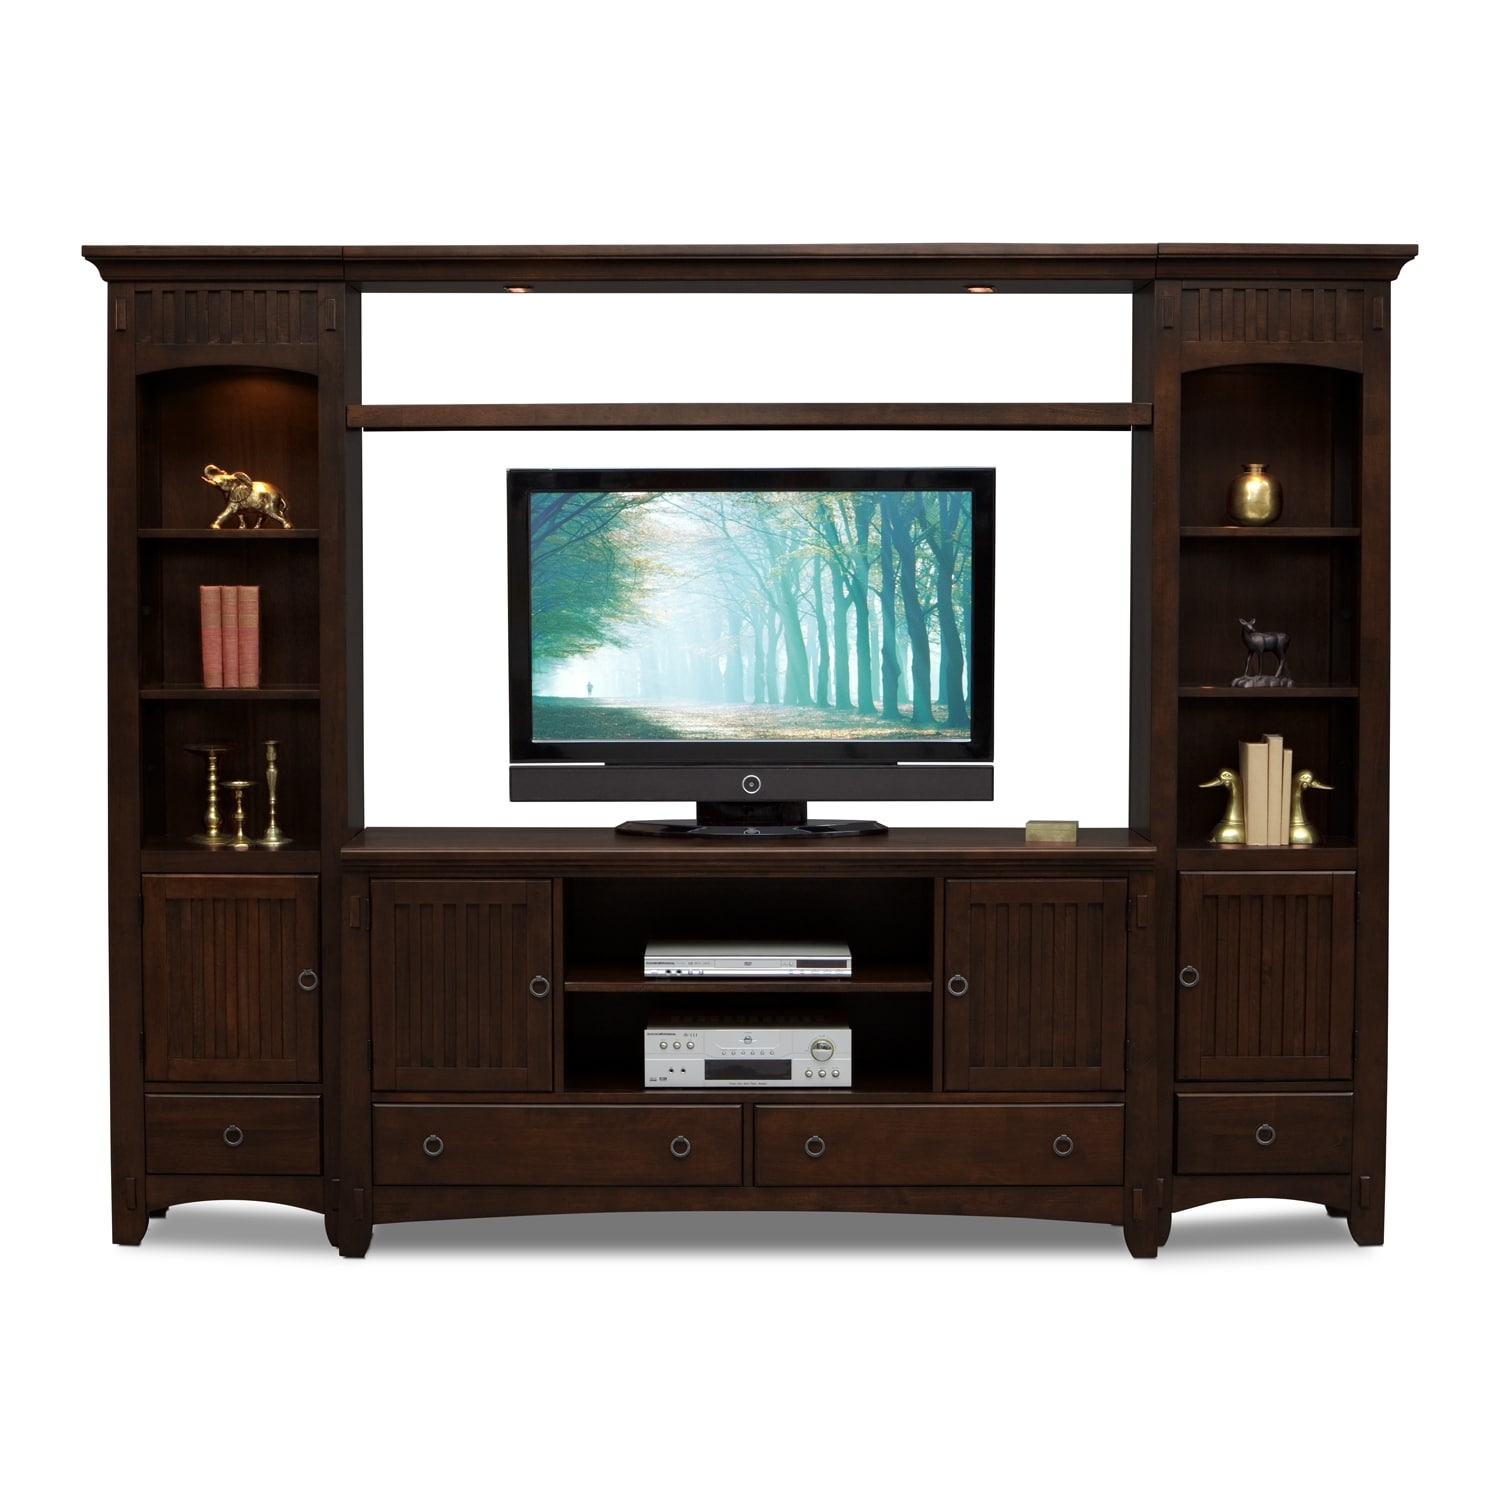 Entertainment Units Acoustic Wall And Home Theaters On: Arts & Crafts 4-Piece Entertainment Wall Unit